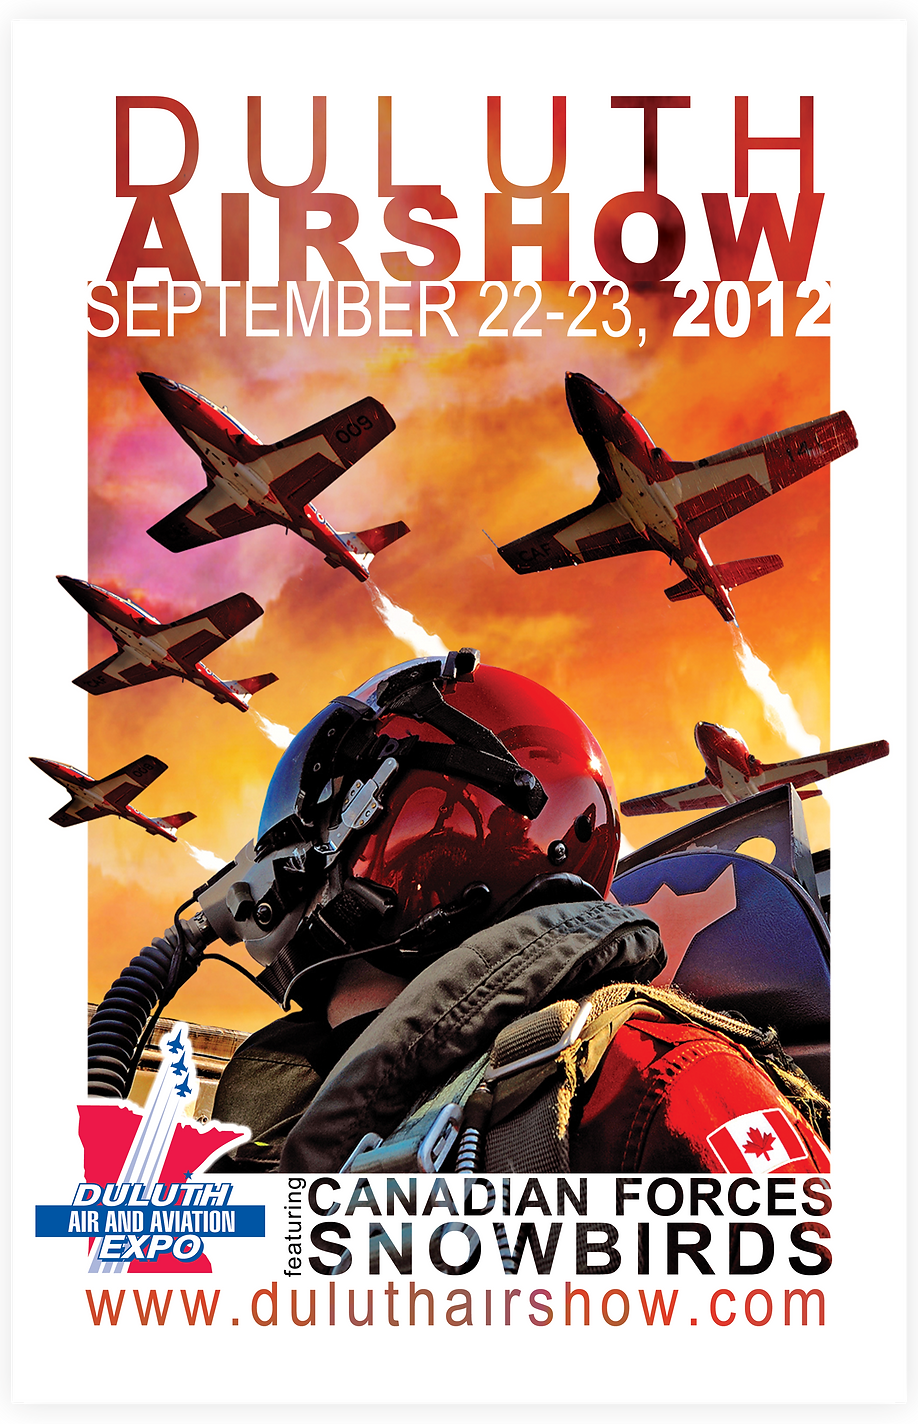 Duluth Airshow Poster Design